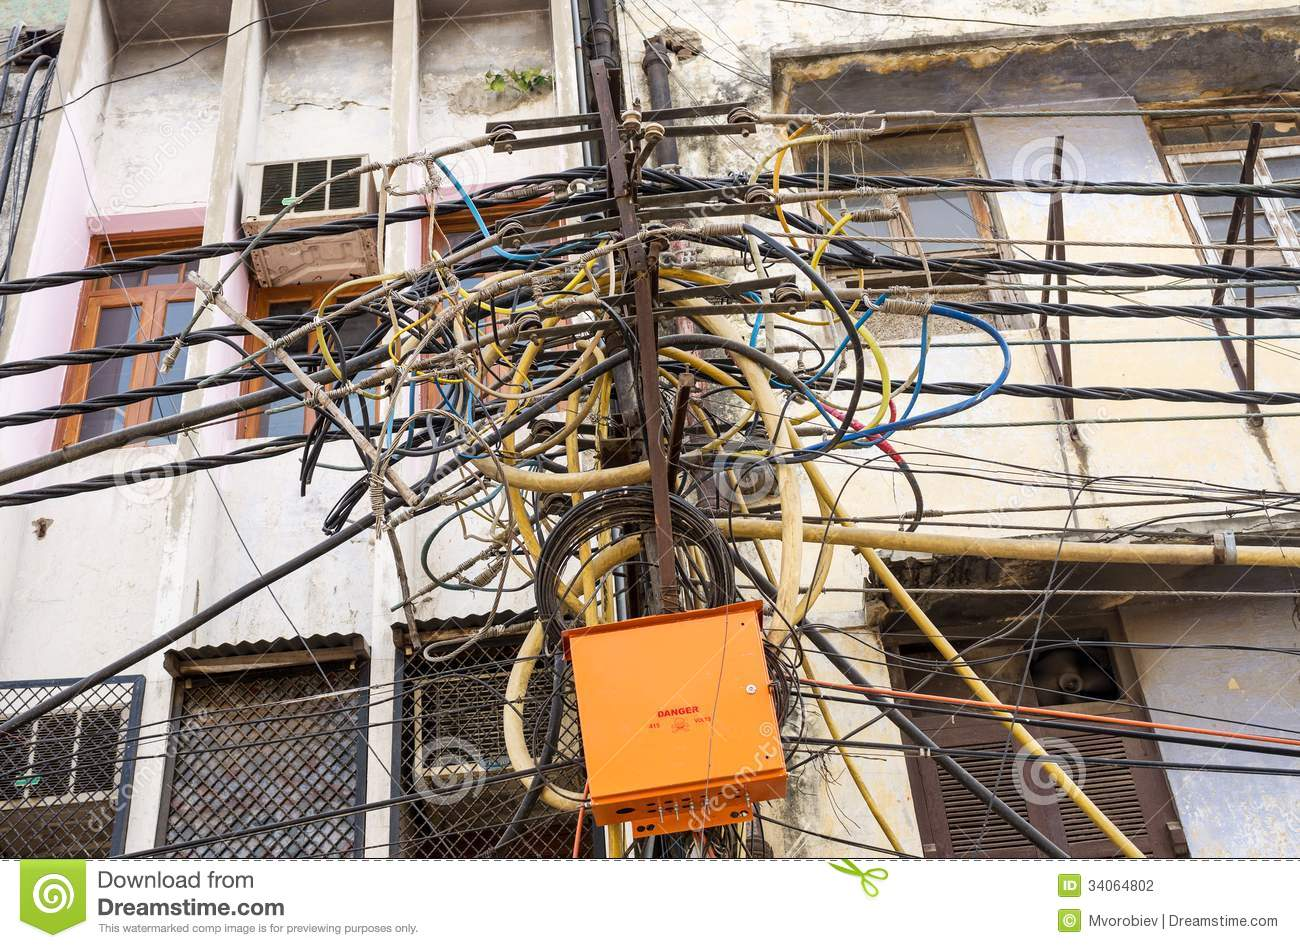 Messy Telephone Wiring Great Design Of Diagram Closet Mess Indian Electricity Pole Stock Photography Image 34064802 Computer Wires